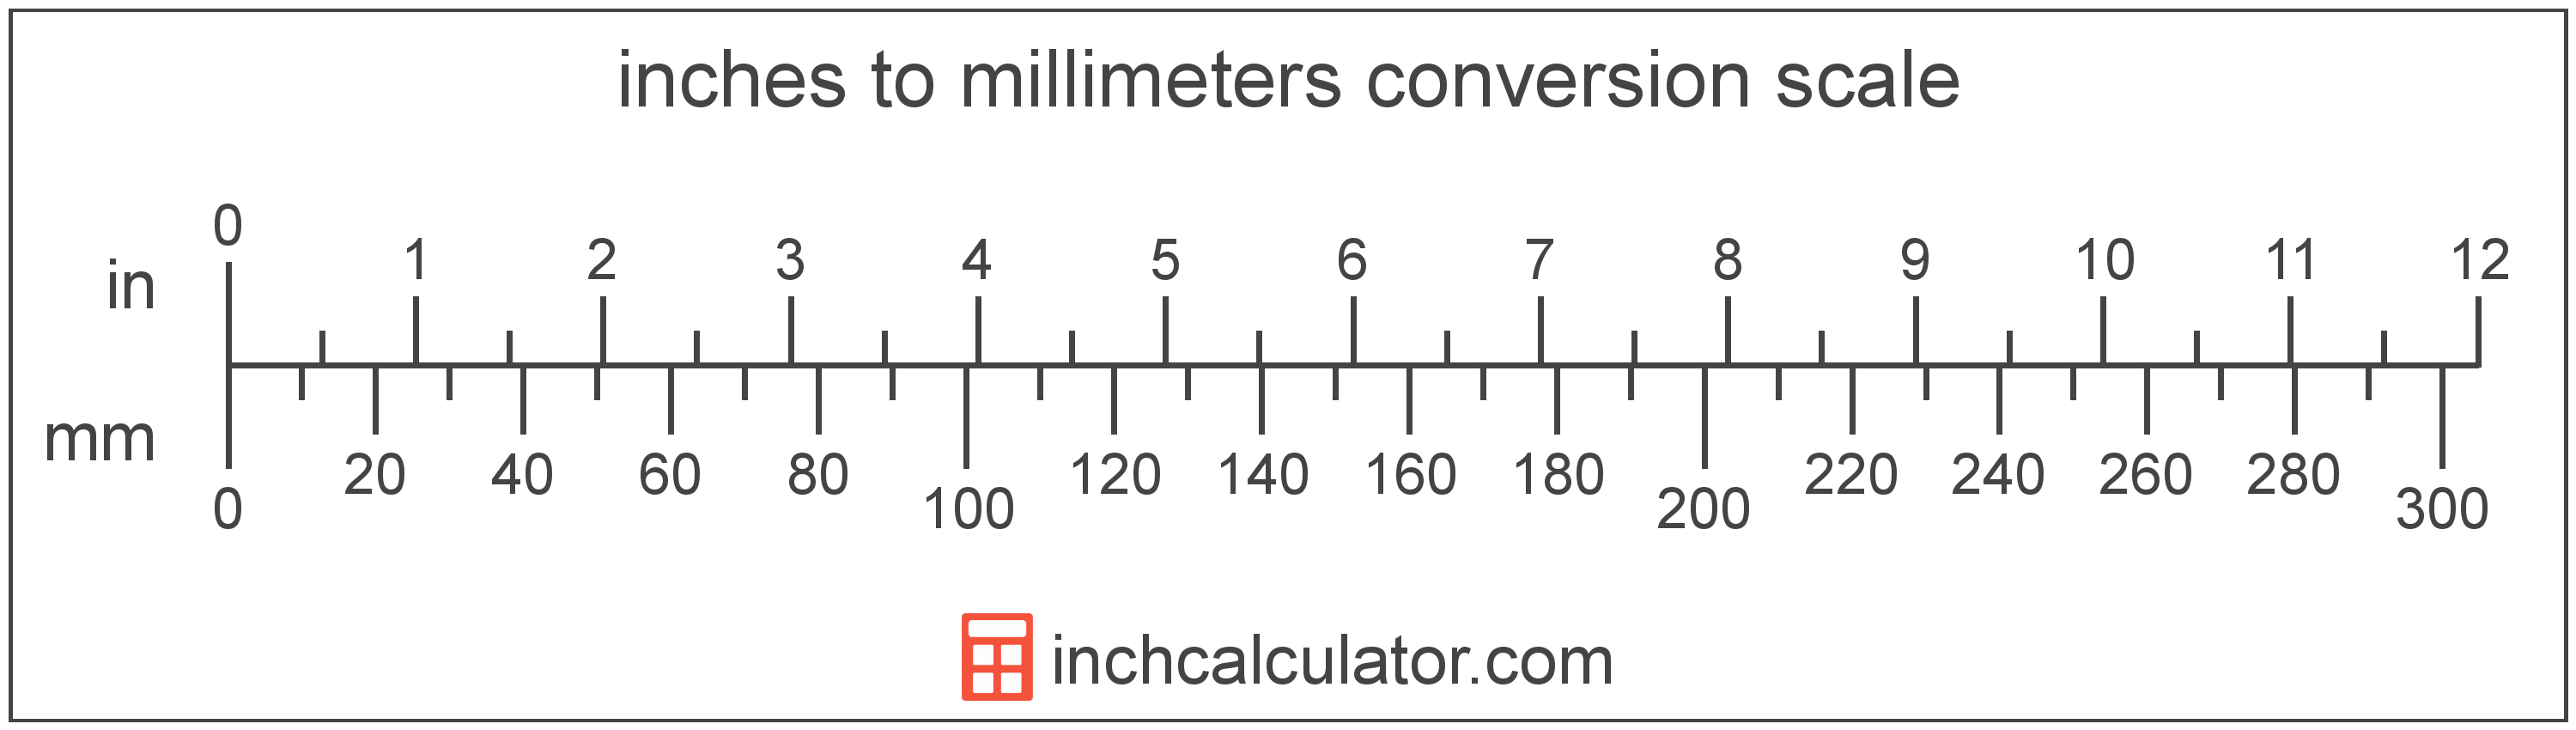 CM to inches converter. Easily convert Centimeters to Inches, with formula, conversion chart, auto conversion to common lengths, more.